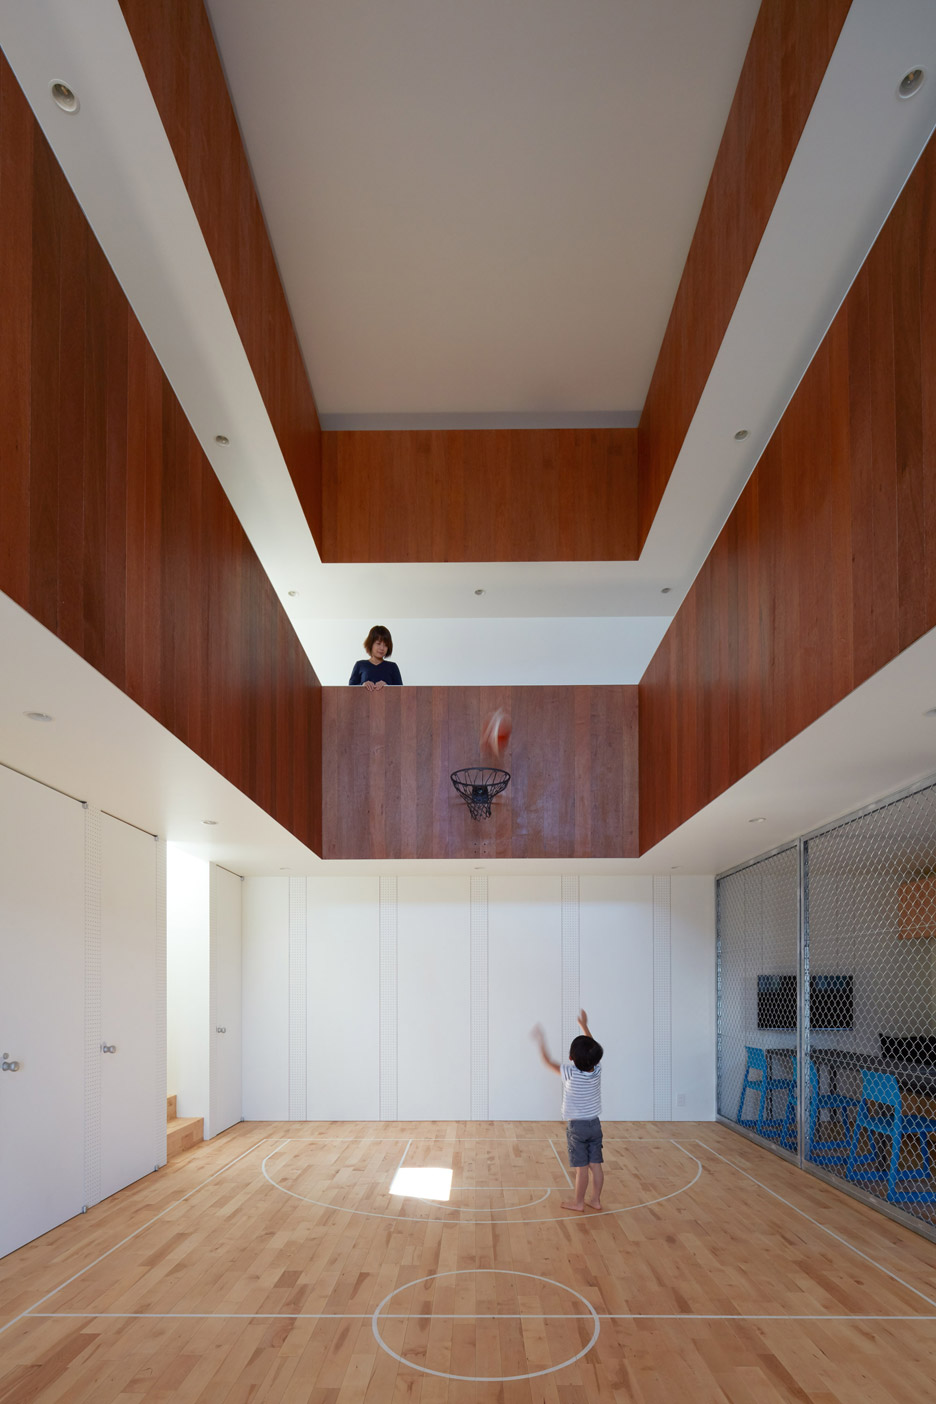 A House In An Has Indoor Basketball Court